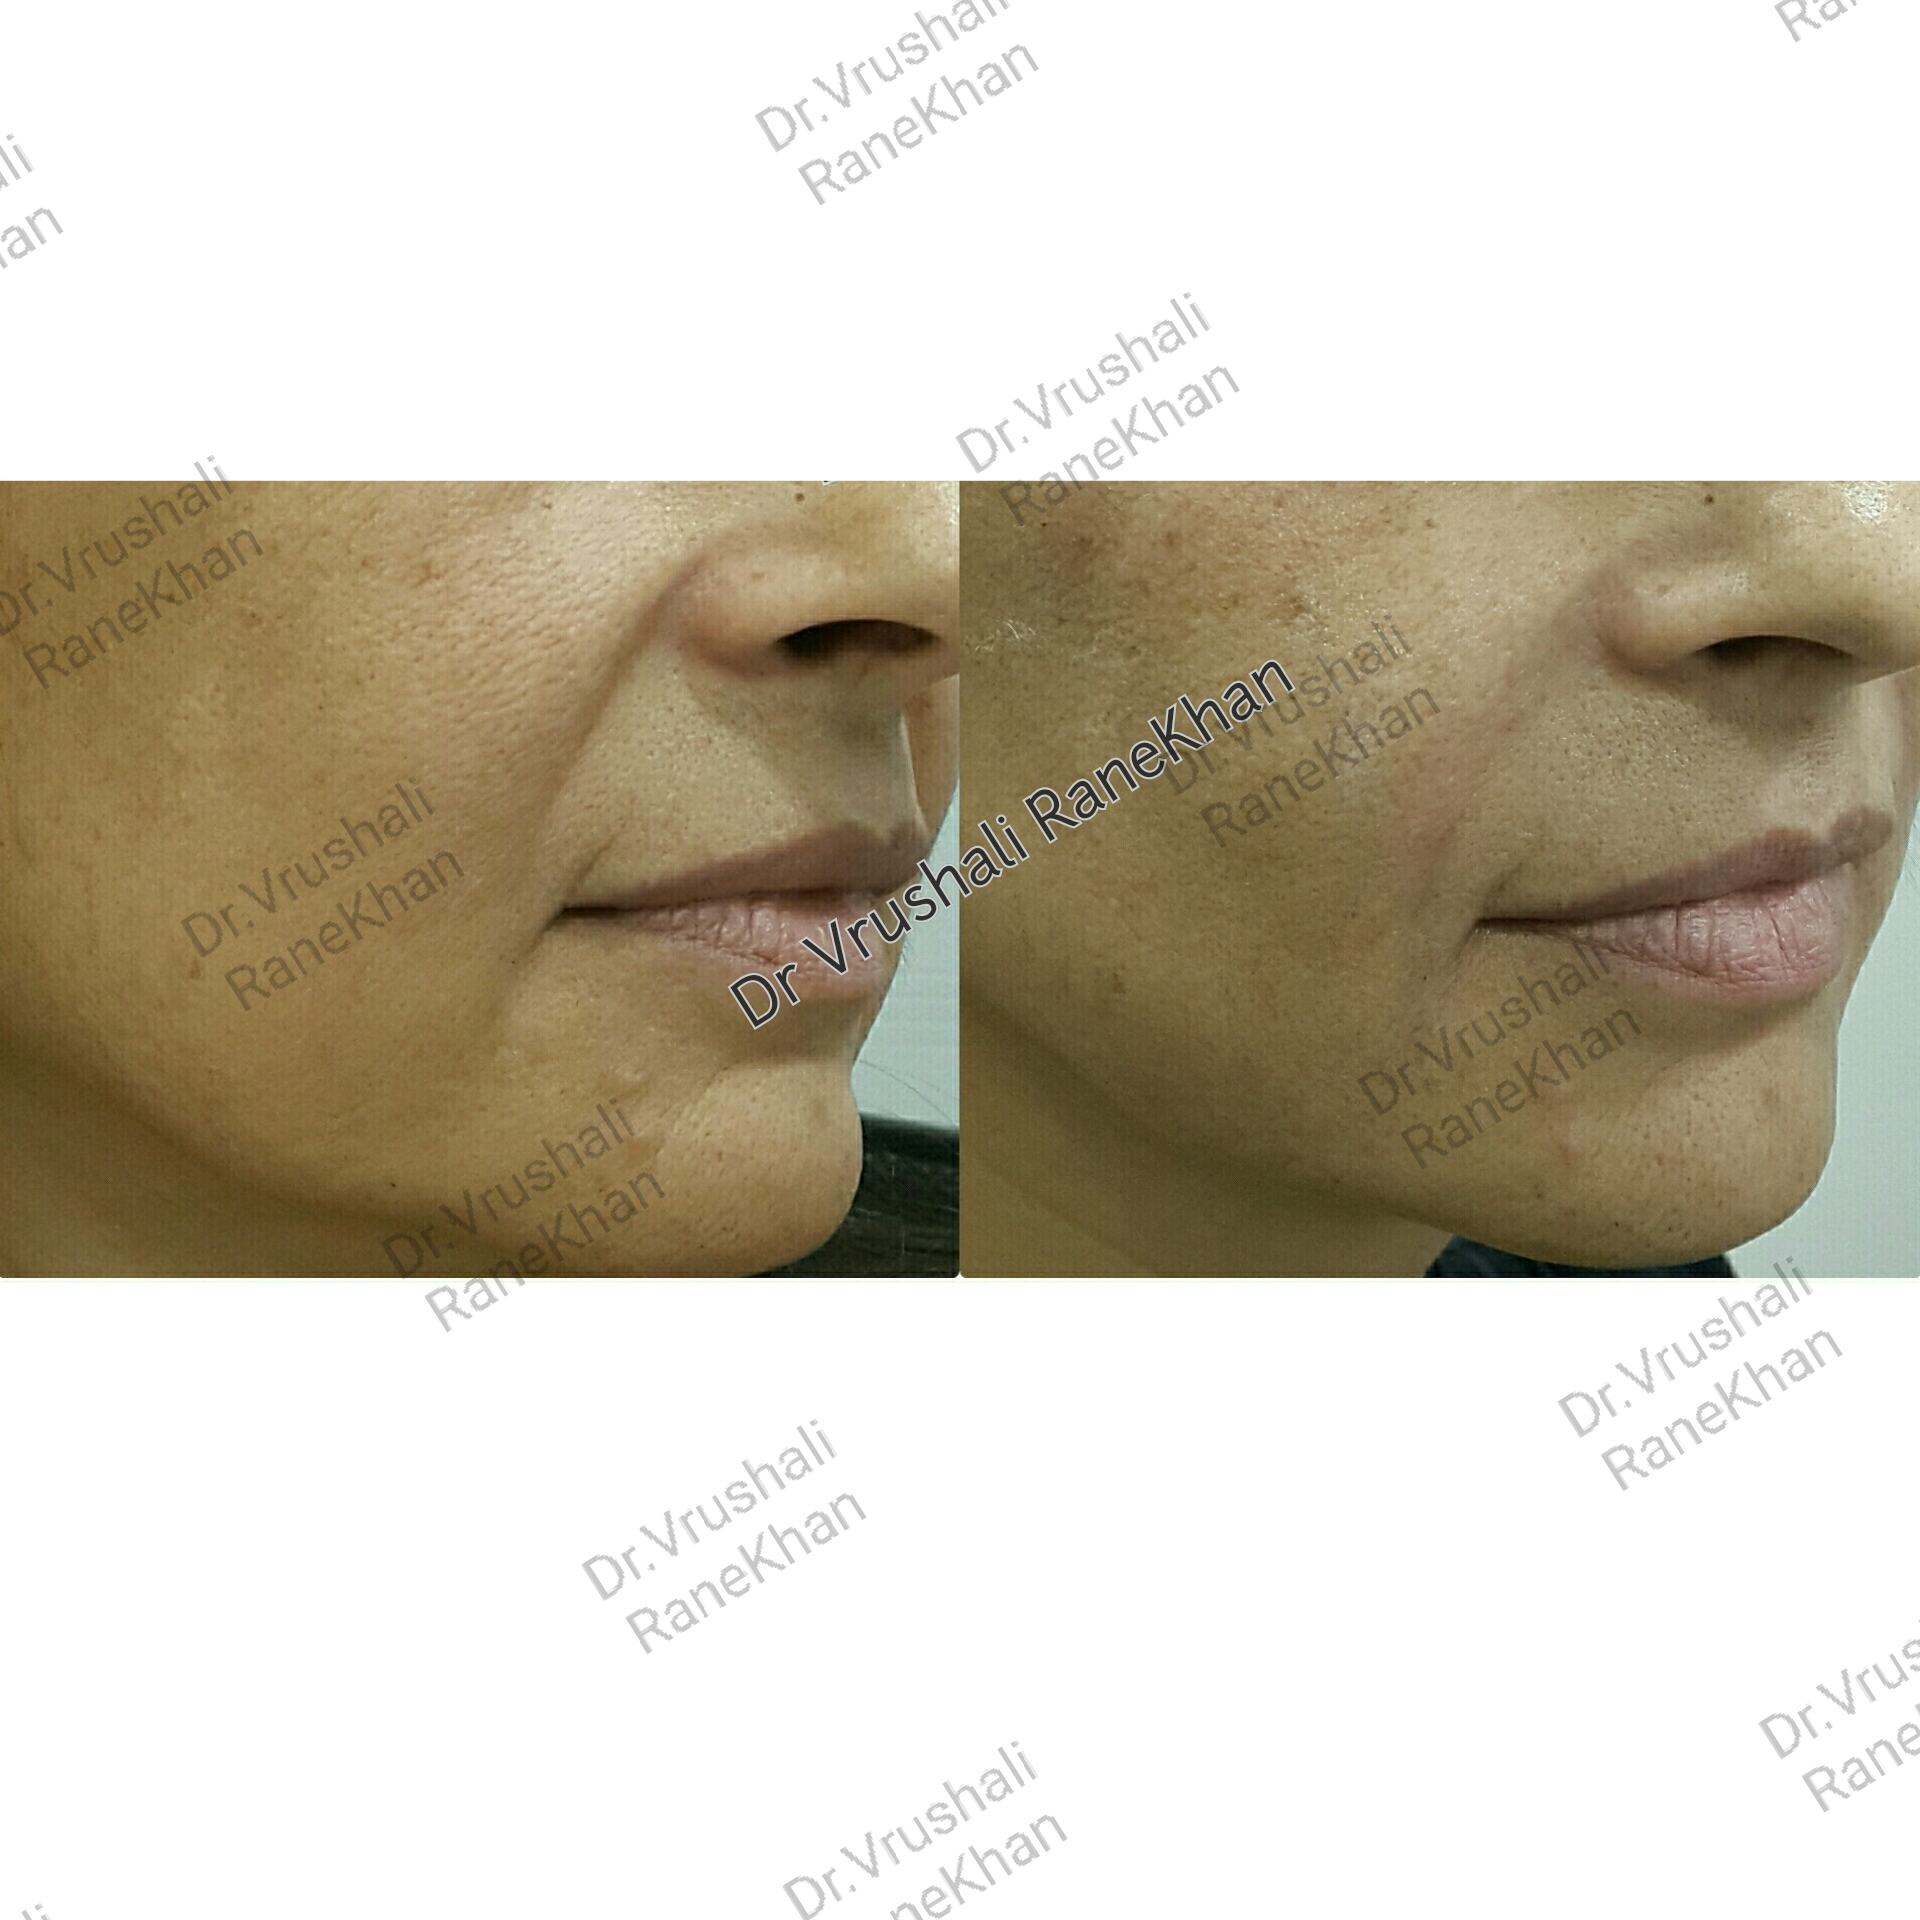 Nasolabial correction - filler